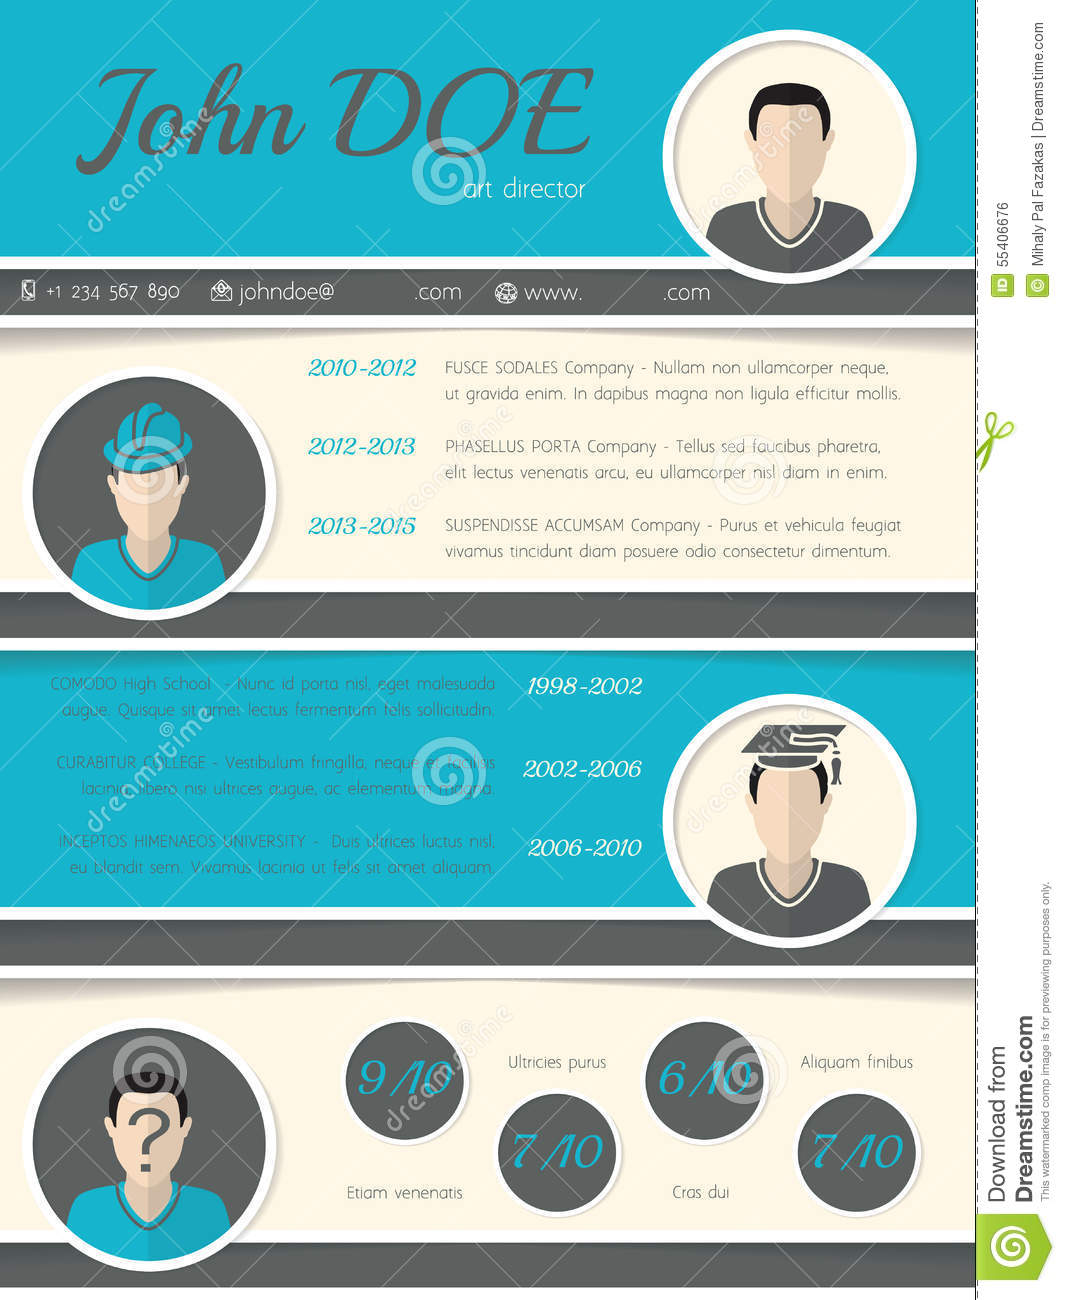 Cv Layout Download Download 12 Free Microsoft Office Docx Resume And Cv Templates Modern Resume Curriculum Vitae Template With Circle Shapes